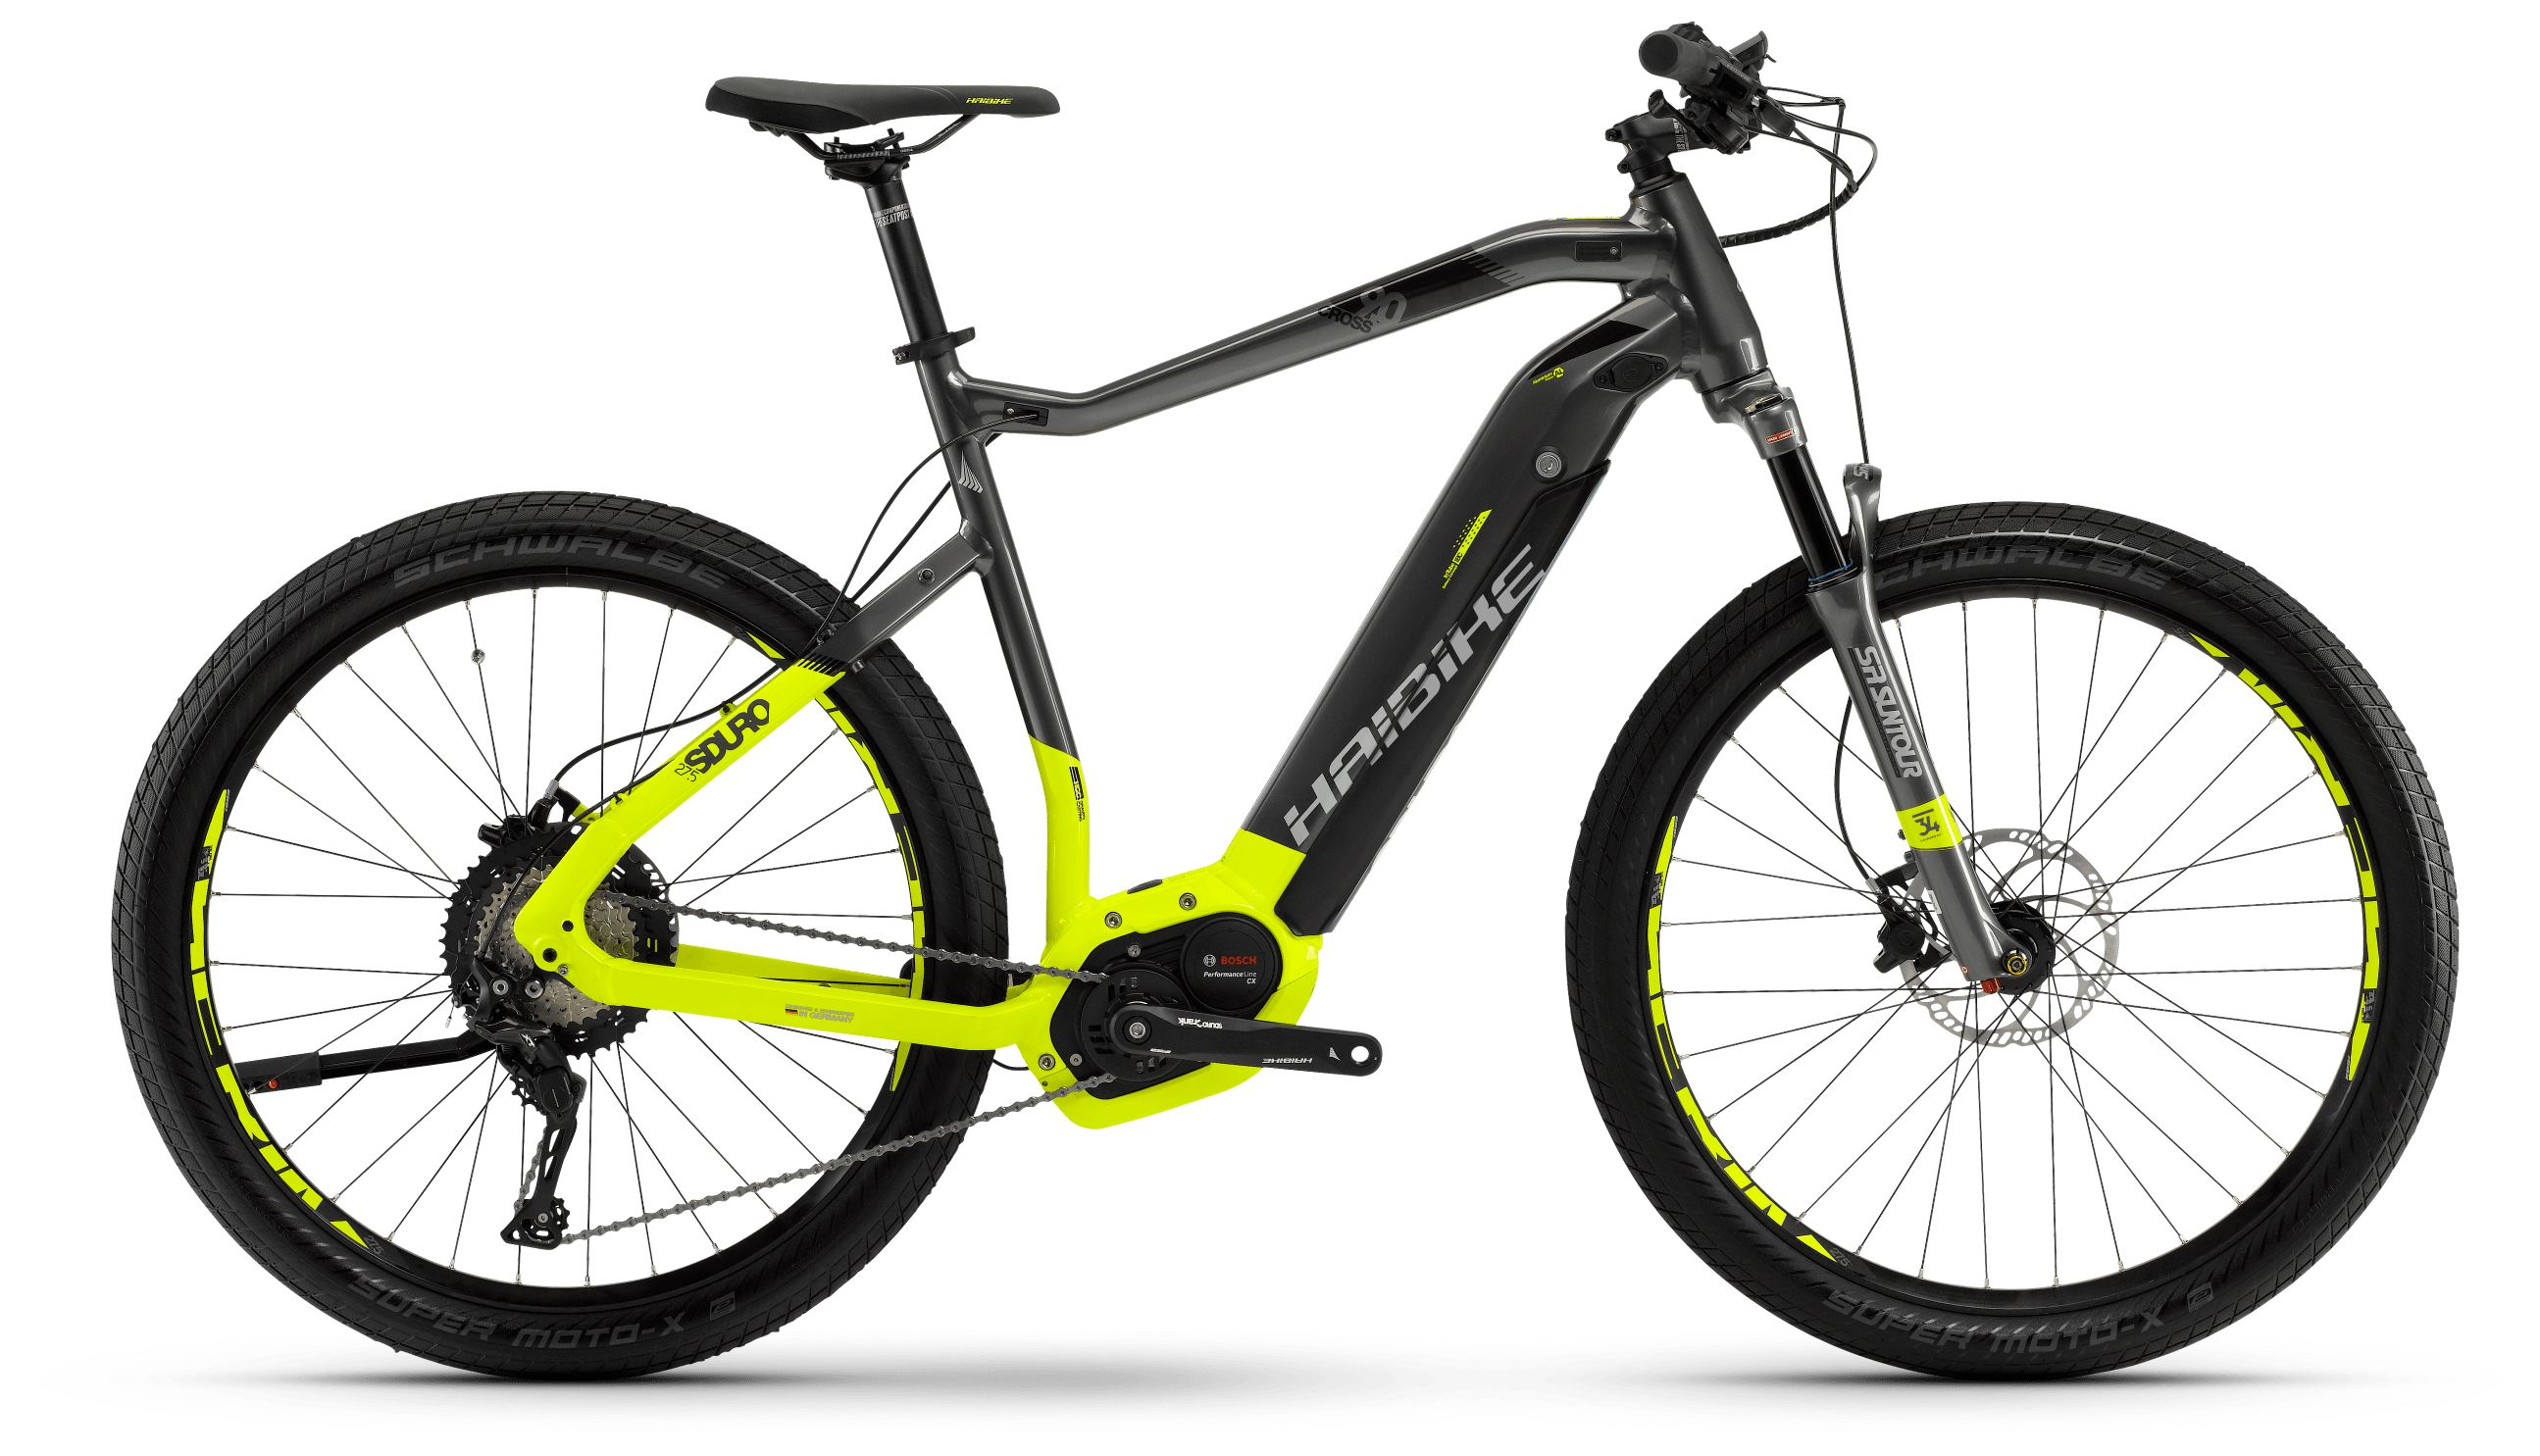 Велосипед Haibike Sduro Cross 9.0 men 500Wh 11s XT 2018 велосипед haibike xduro urban s 5 0 500wh 11s rival 2018